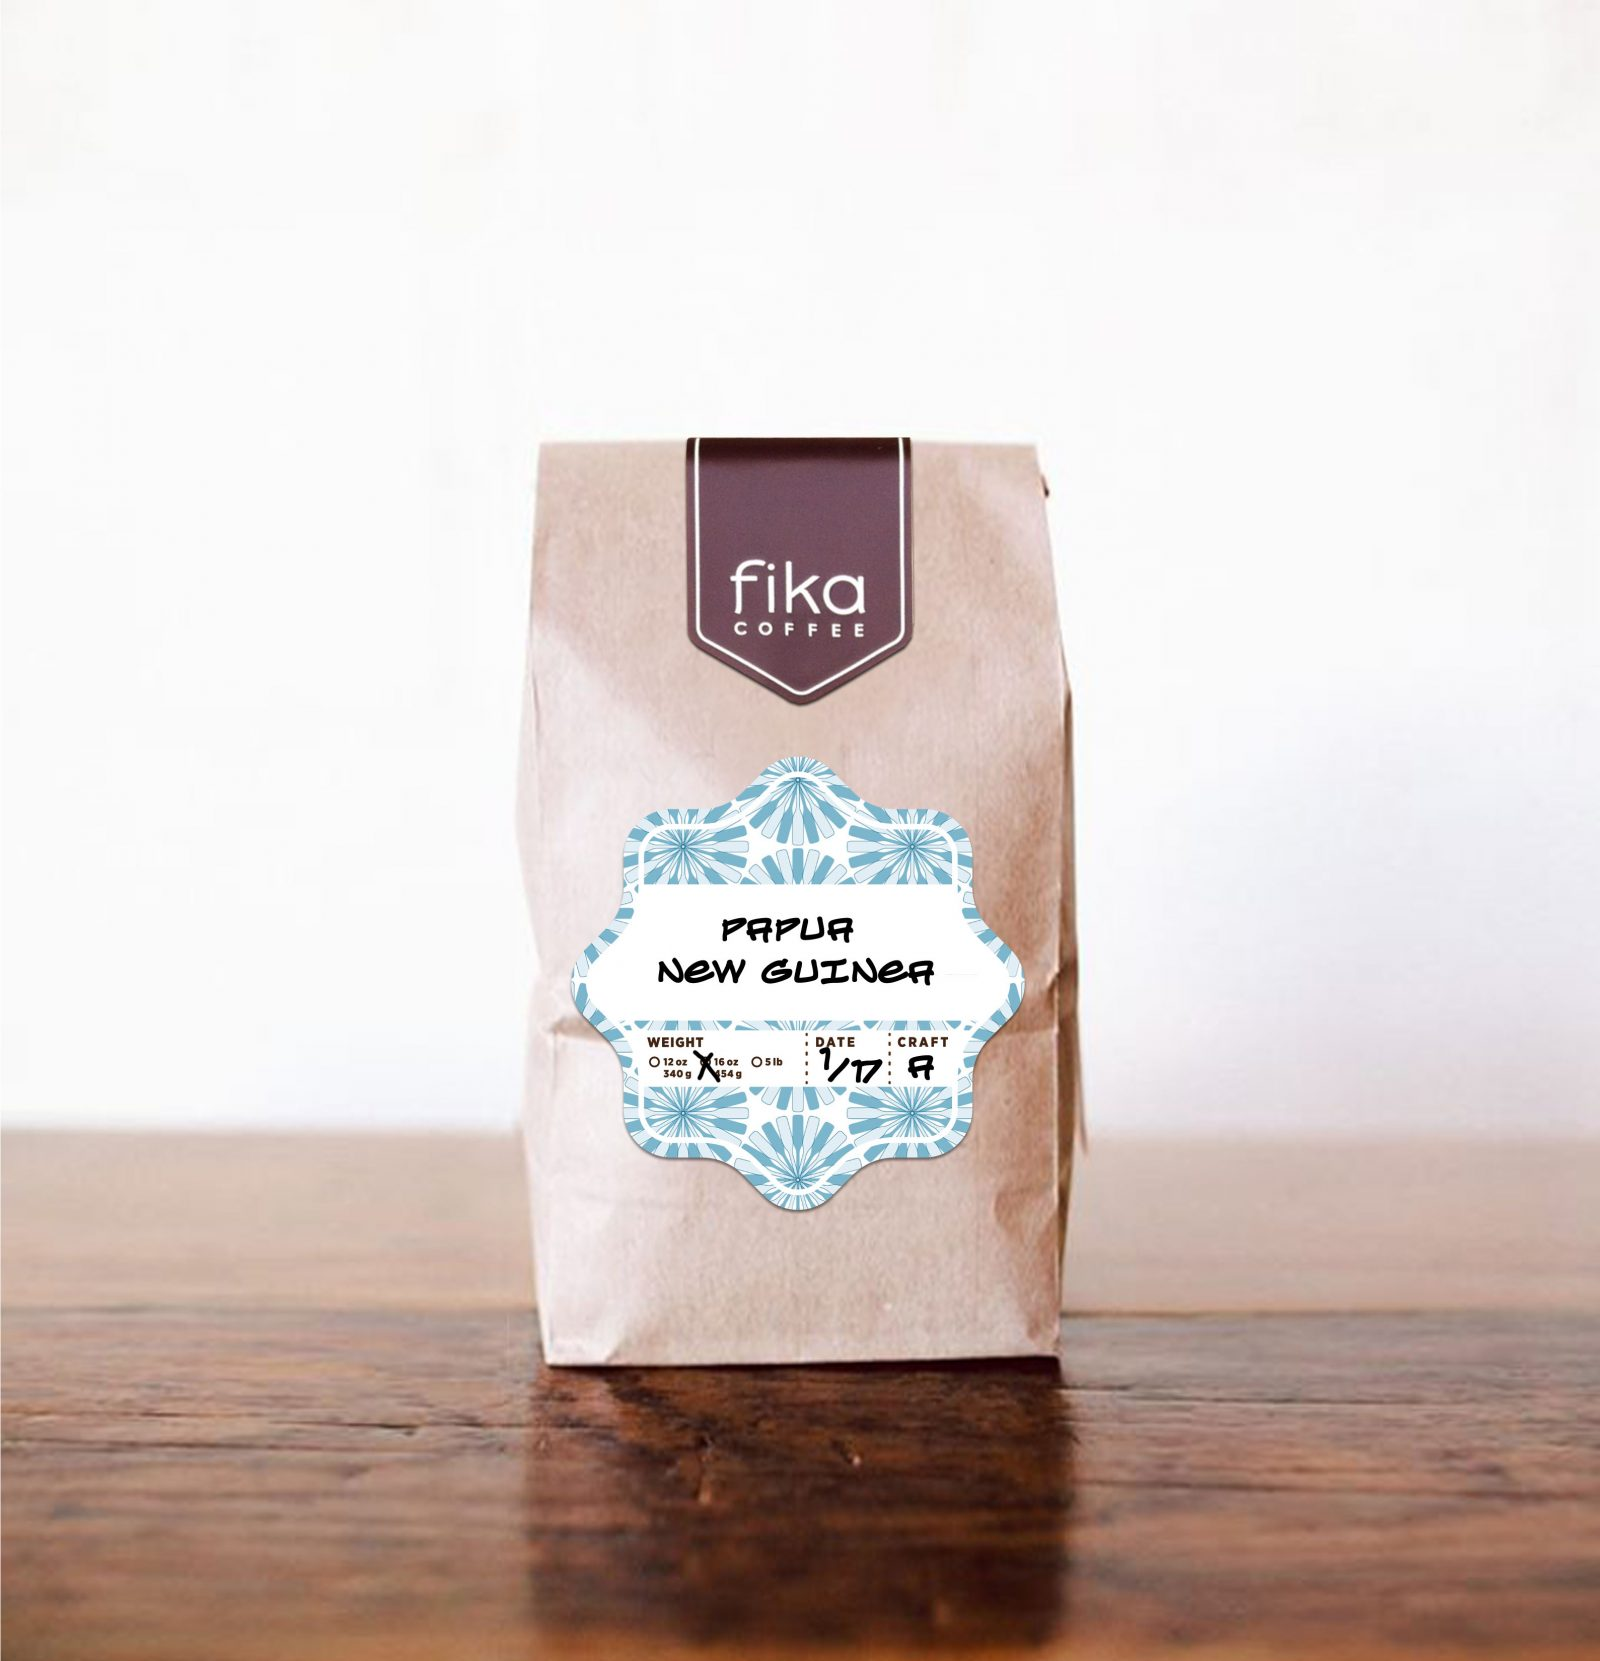 Fika Coffee Packaging Label Sticker-tall 2016-C